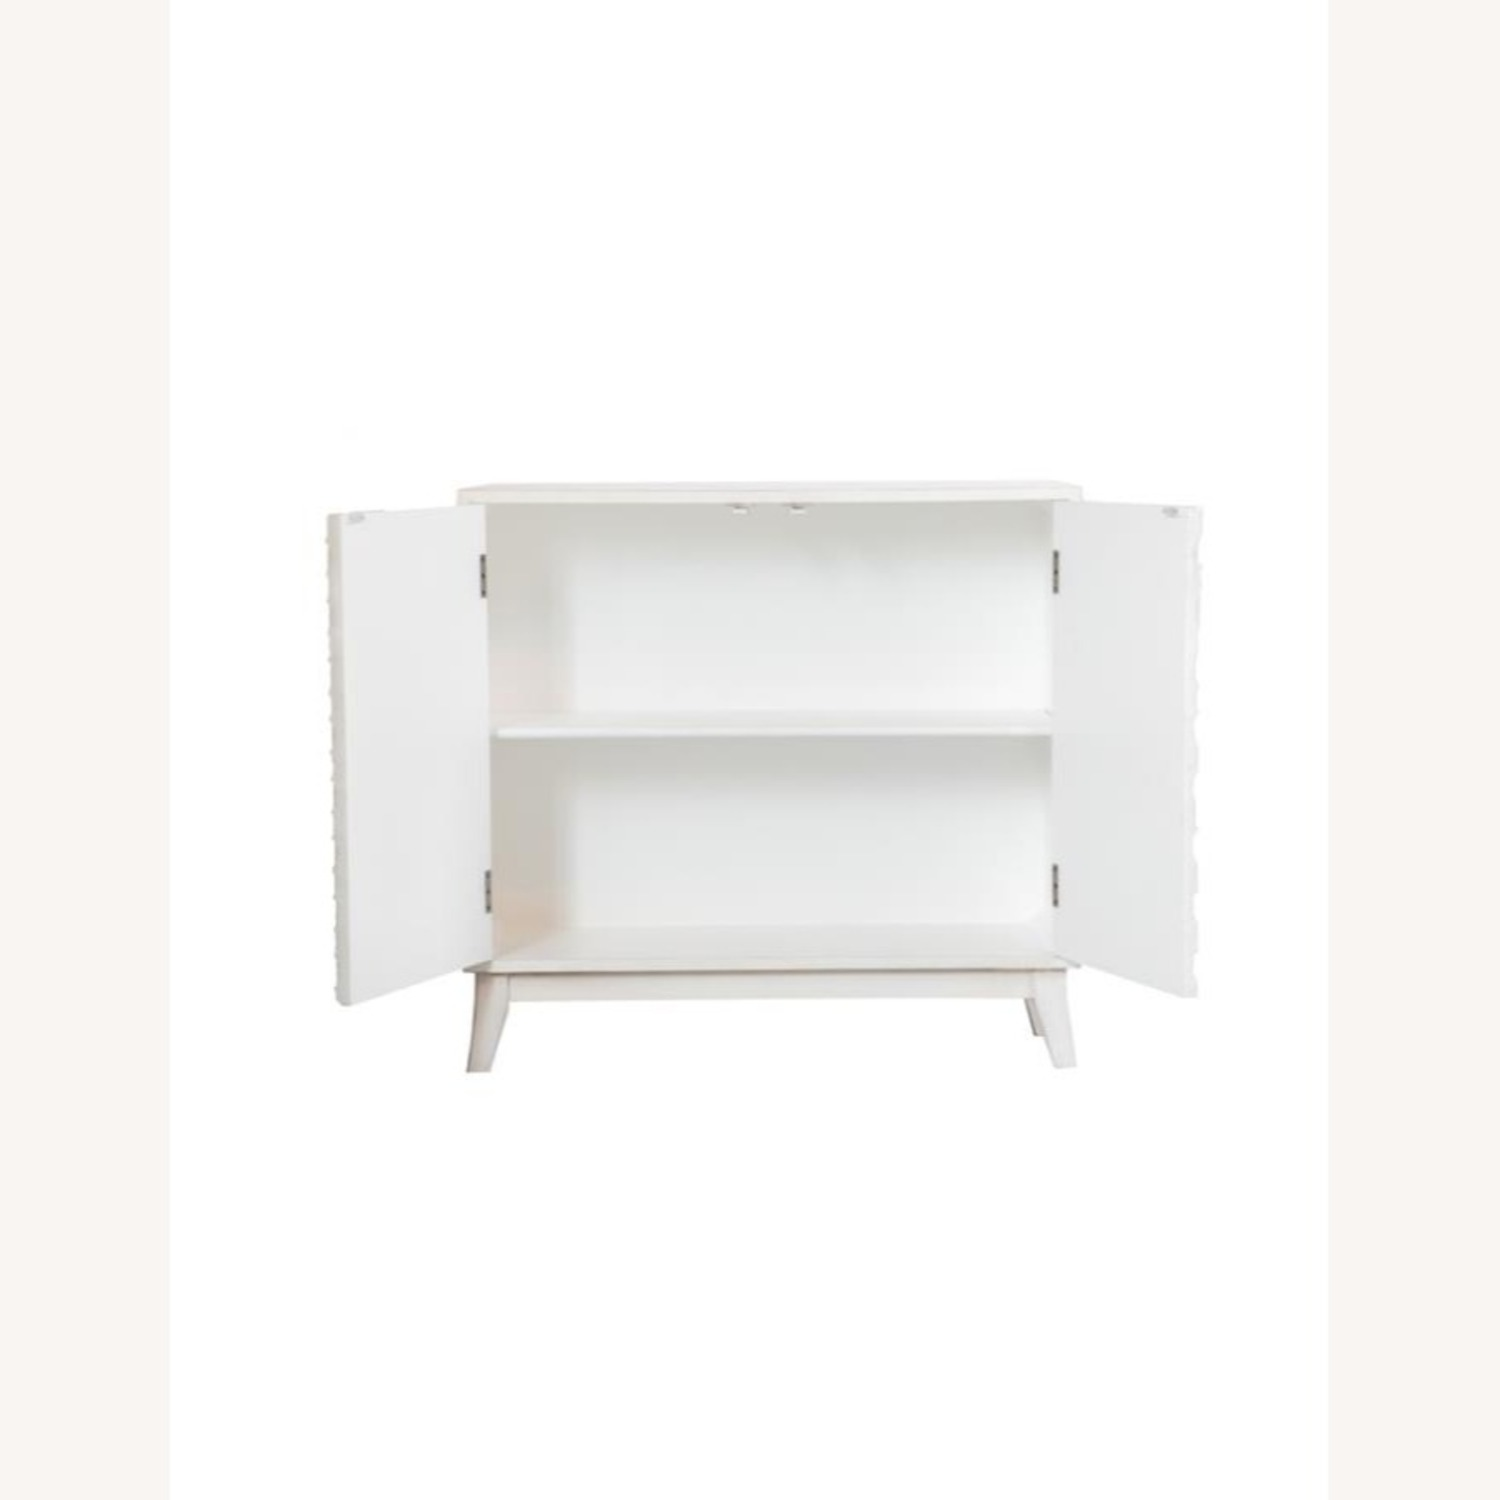 Accent Cabinet In White Washed Finish - image-1